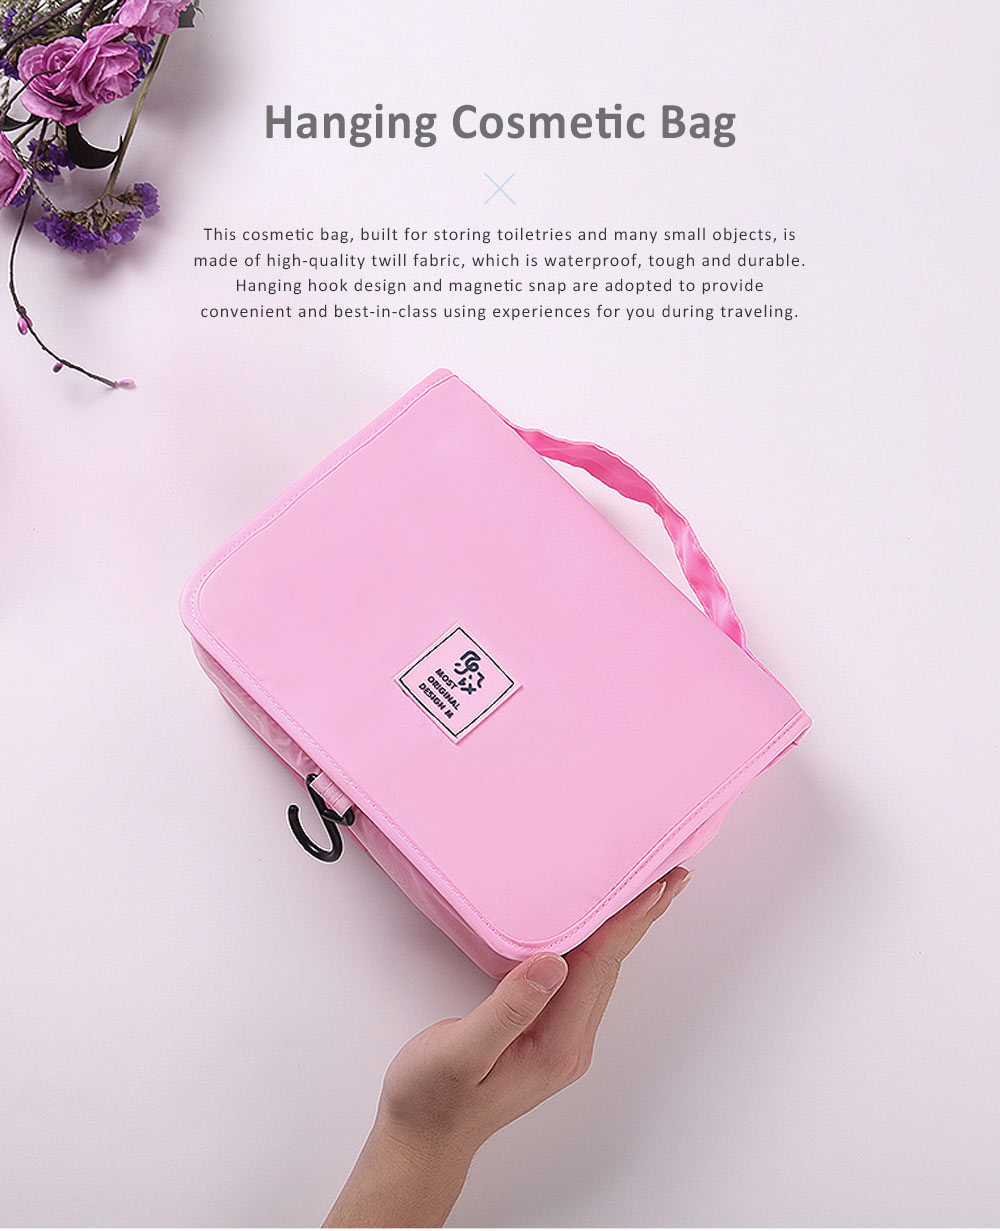 Large Capacity Waterproof Twill Fabric Makeup Cosmetic Bag, Minimalist Portable Functional Travel Toiletry Wash Storage Hanging Bag 0